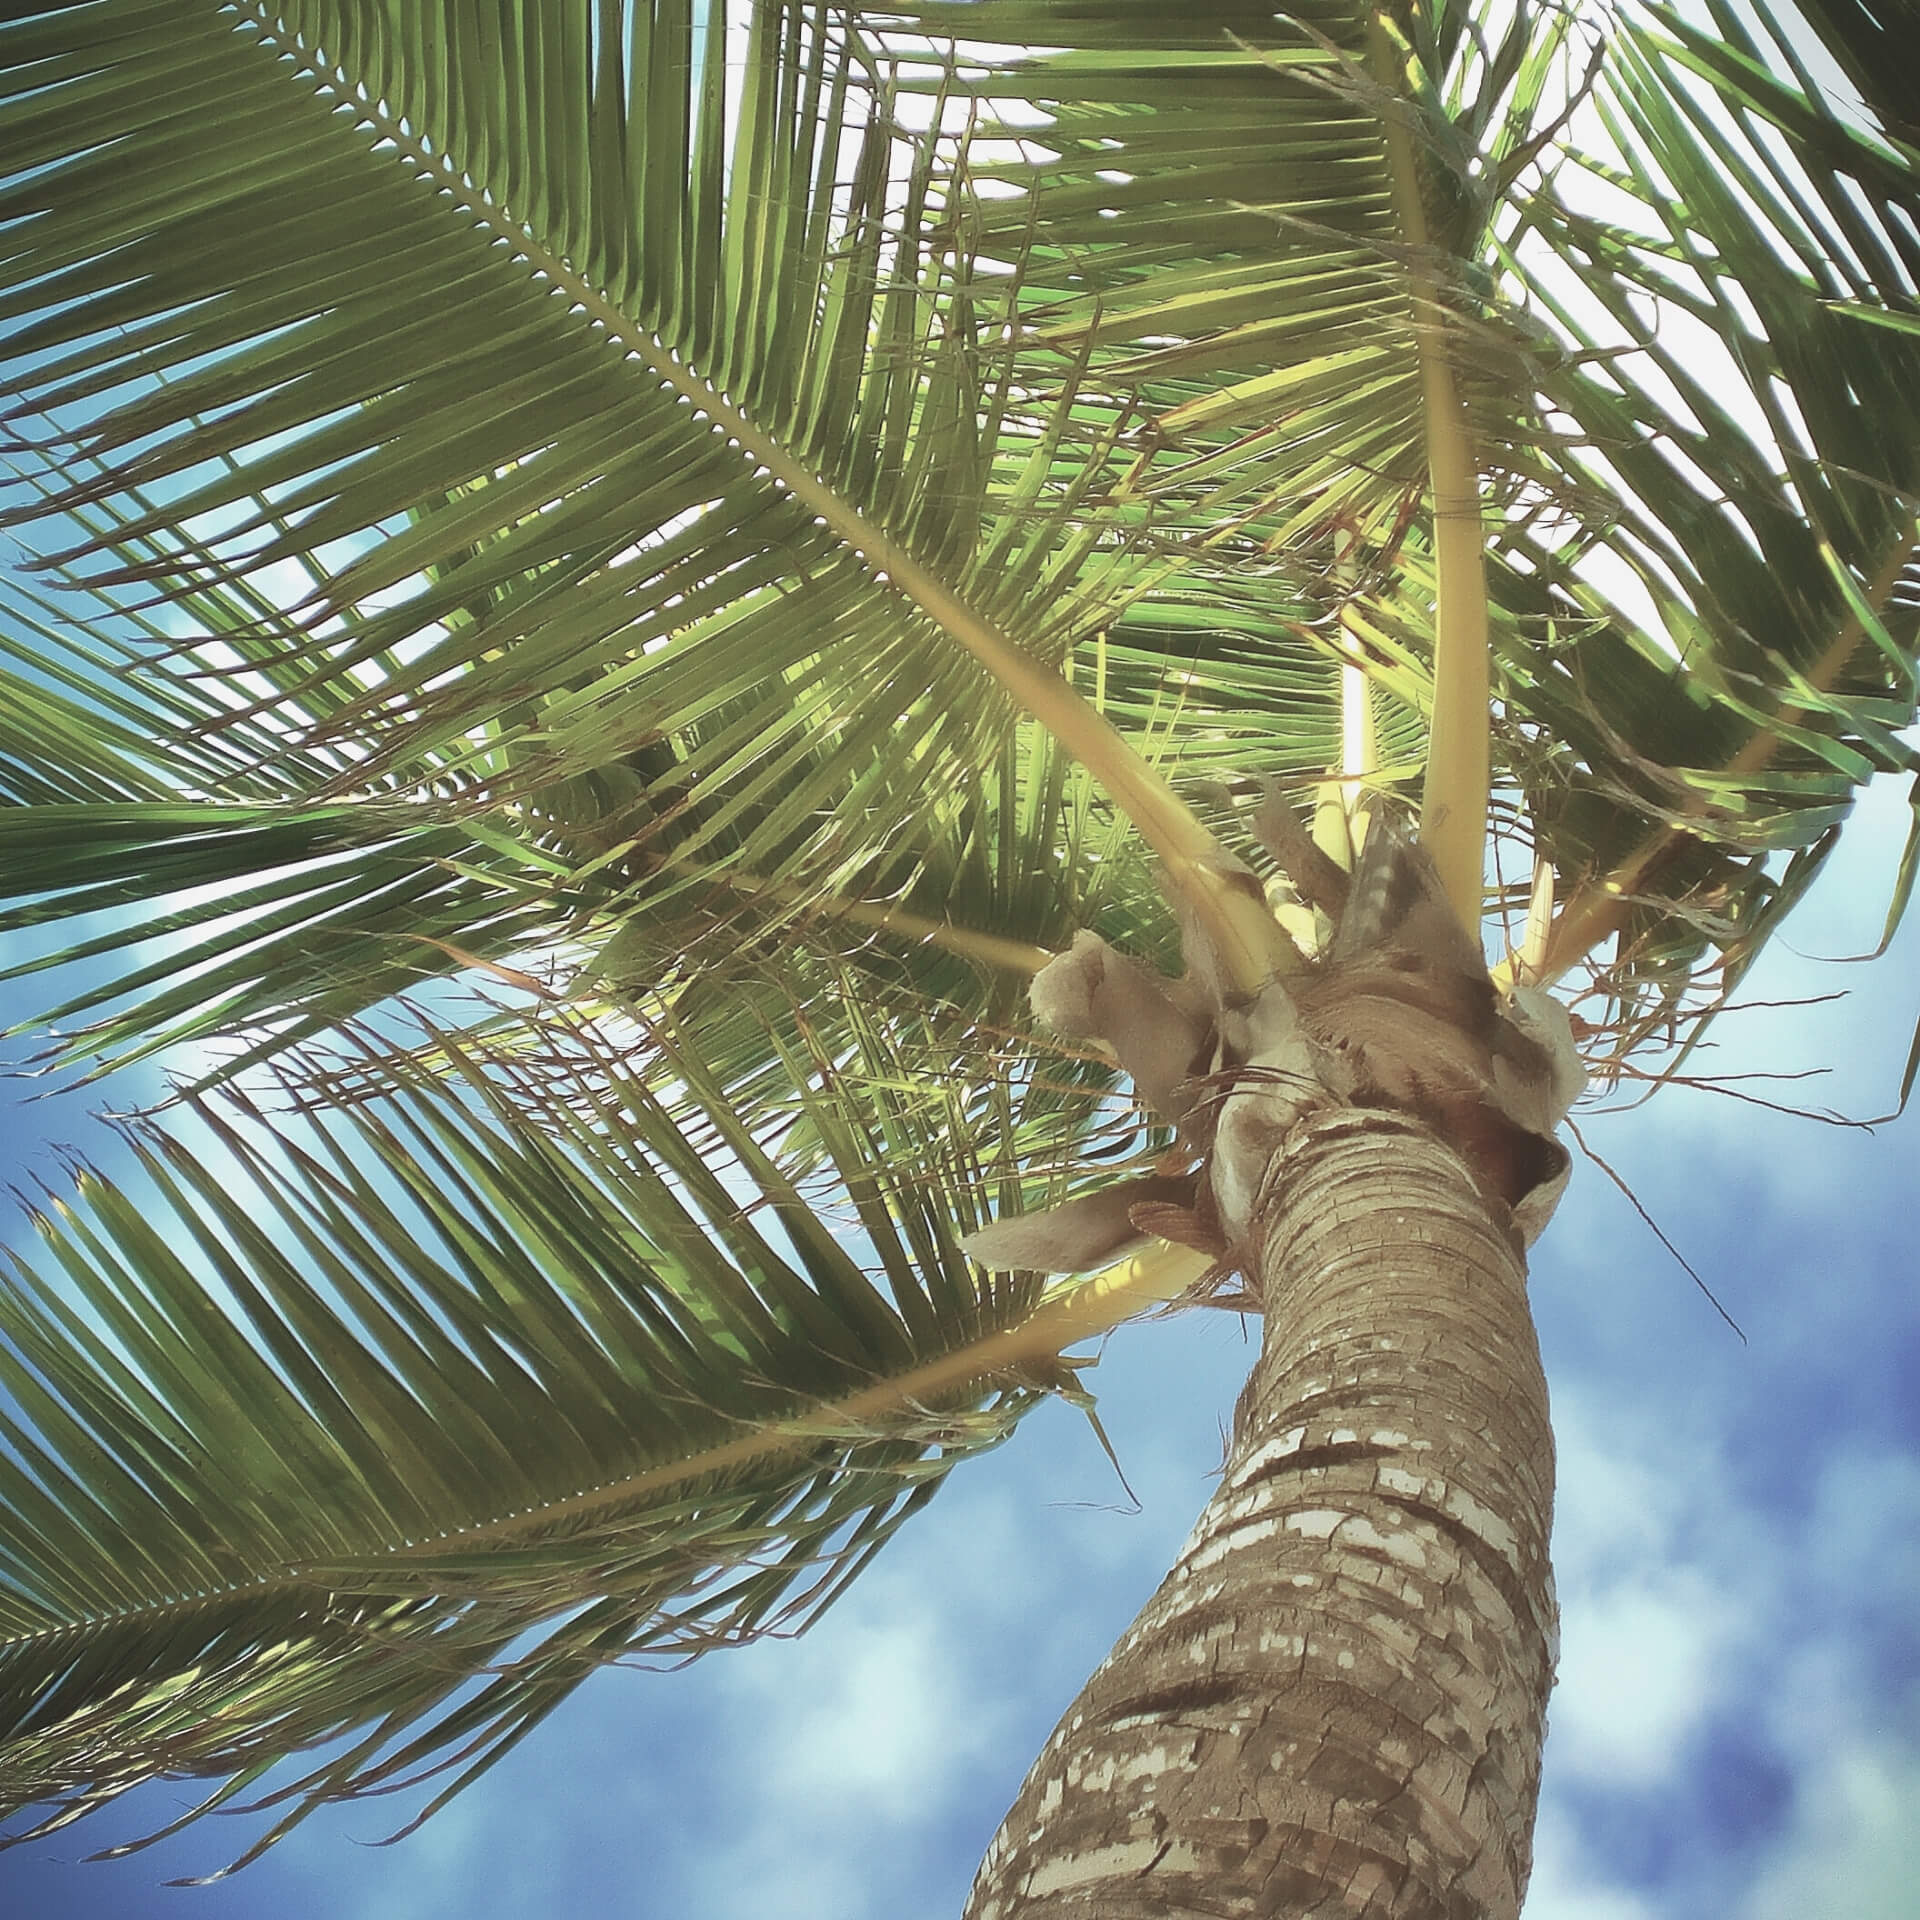 Design for sustainability: Viewpoint of a palm tree as if looking up while standing at it's trunk.